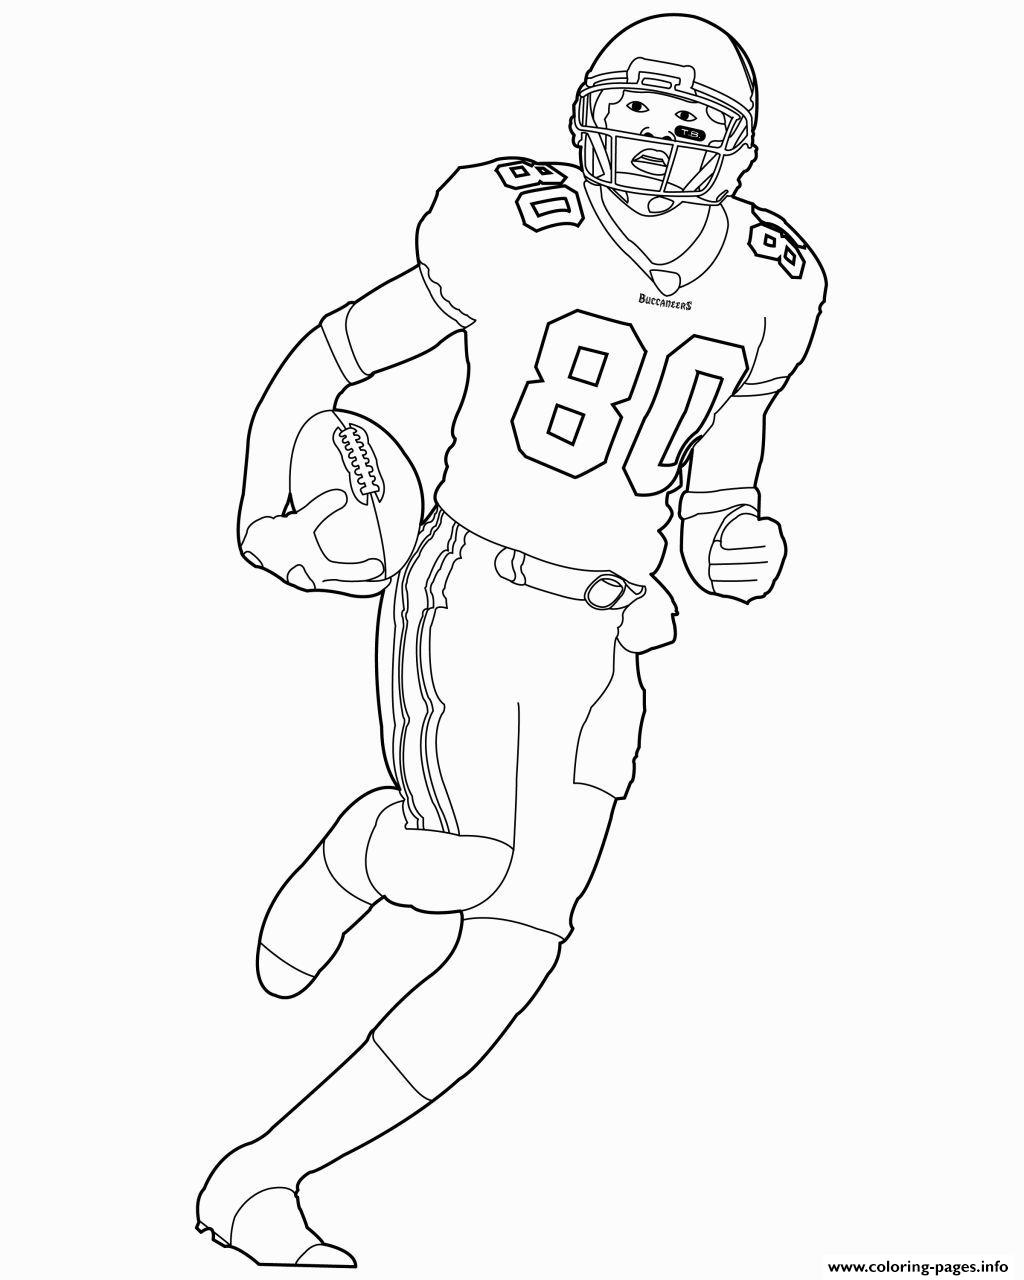 NFL Player For Kids coloring pages